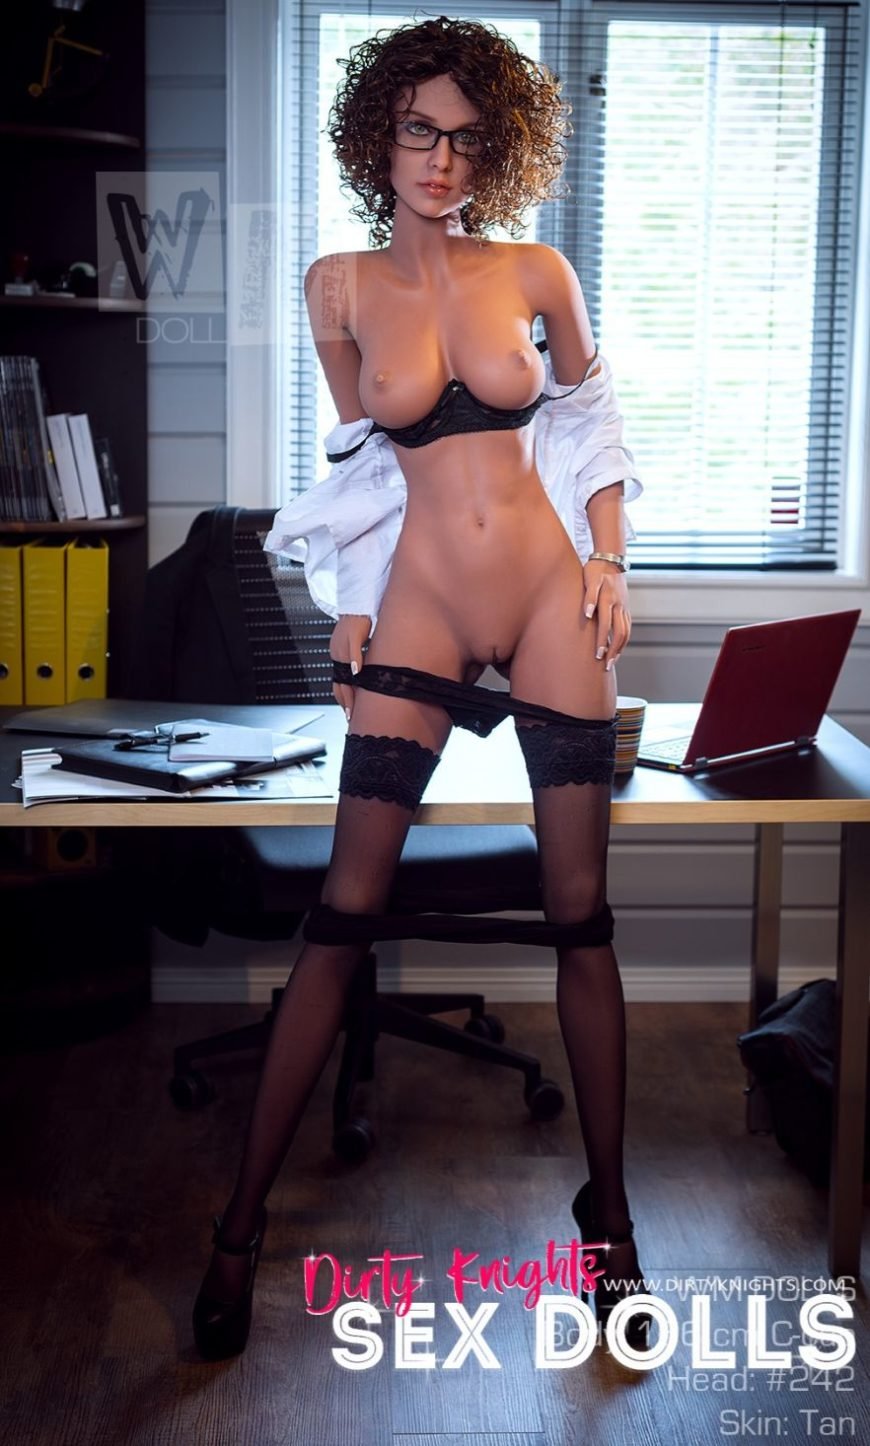 Beautiful sex doll created for Dirty Knights Sex Dolls posing nude at office (7)